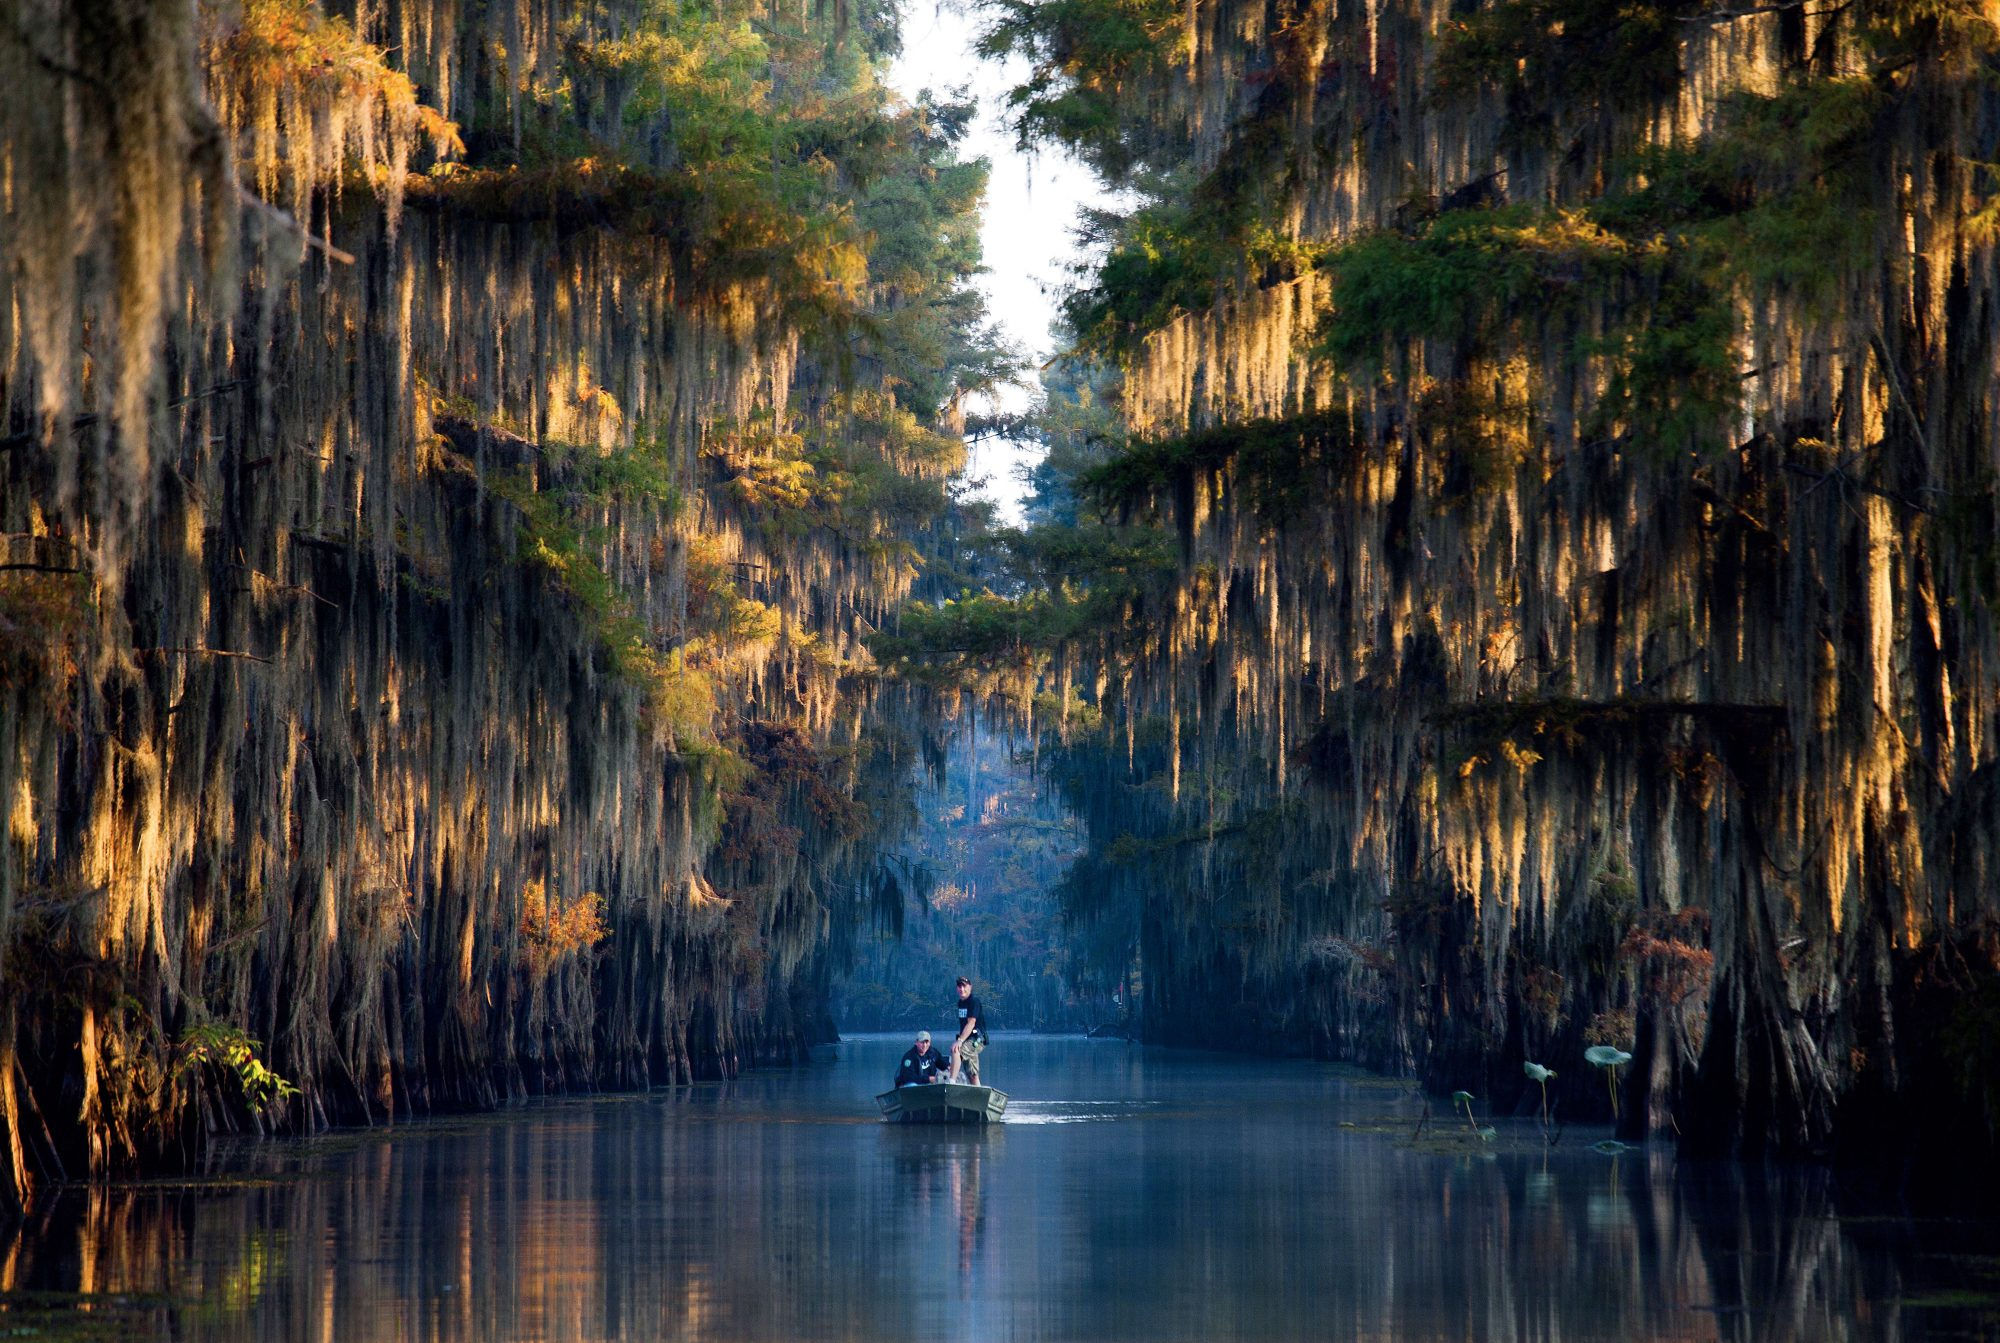 10. Caddo Lake State Park